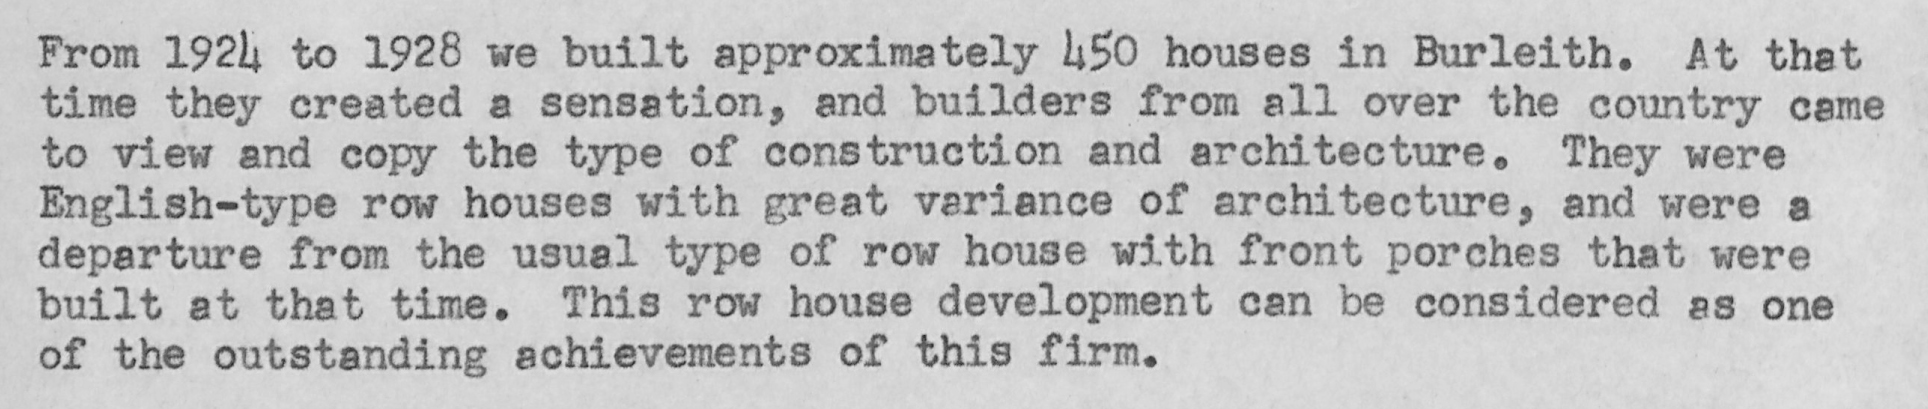 Excerpt from a 1956 memo from Shannon & Luchs to ad agency henry j. kaufman & associates. Source: Box 17, Folder 10, Shannon & Luchs Archive, American University Archives and Special Collections.